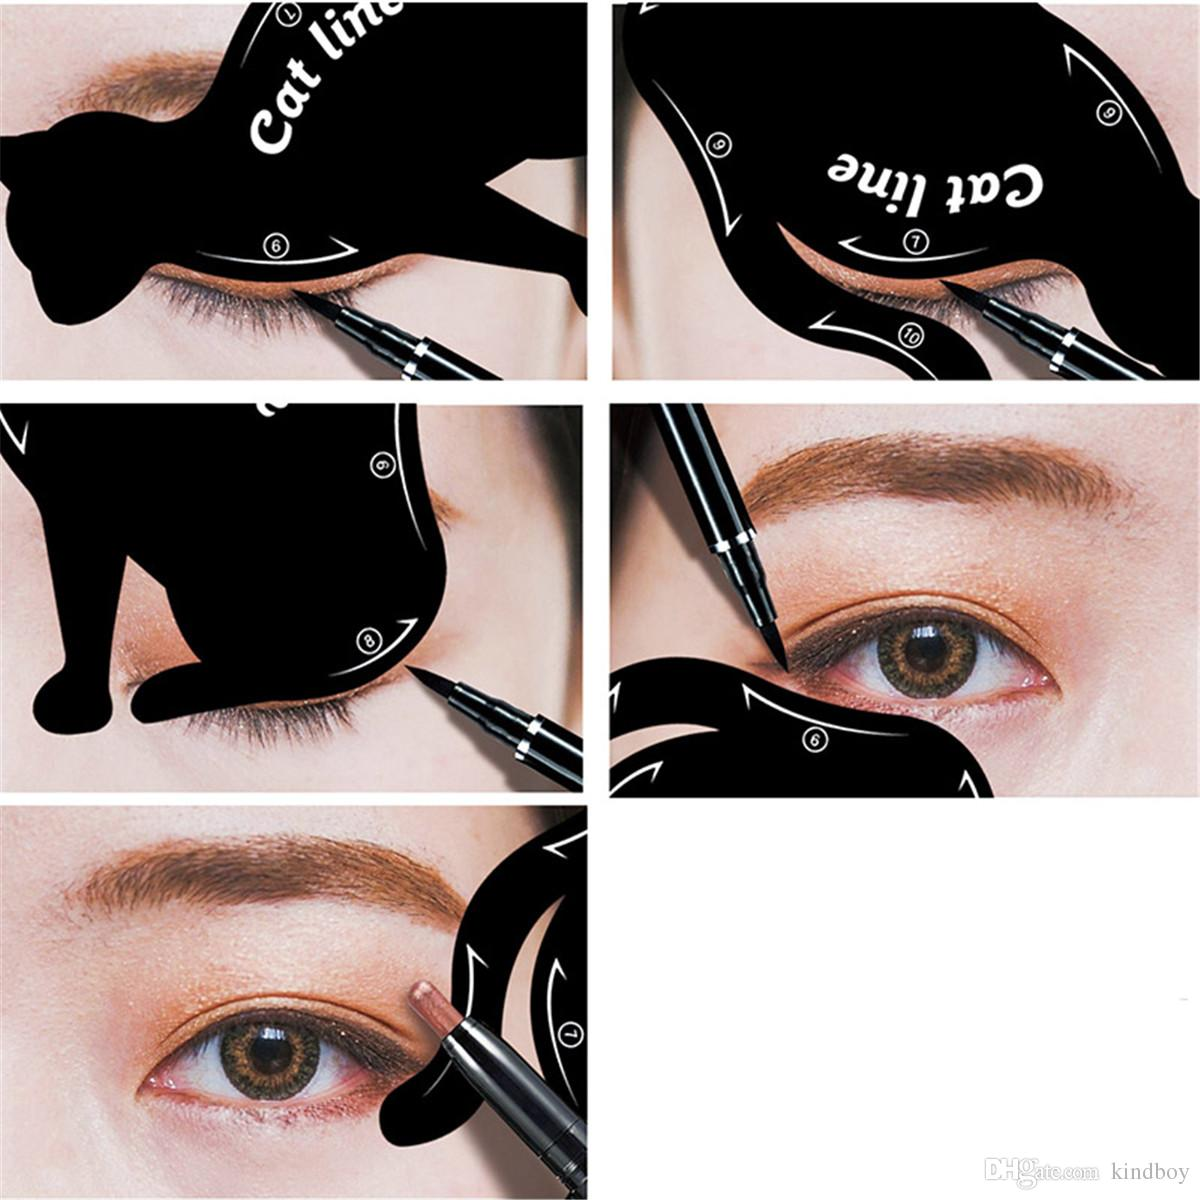 New Cat Line Eye Makeup Eyeliner Stencils Templates Makeup Tools Kits For Eye Beginners Efficient Eyeline Card Tools DHL